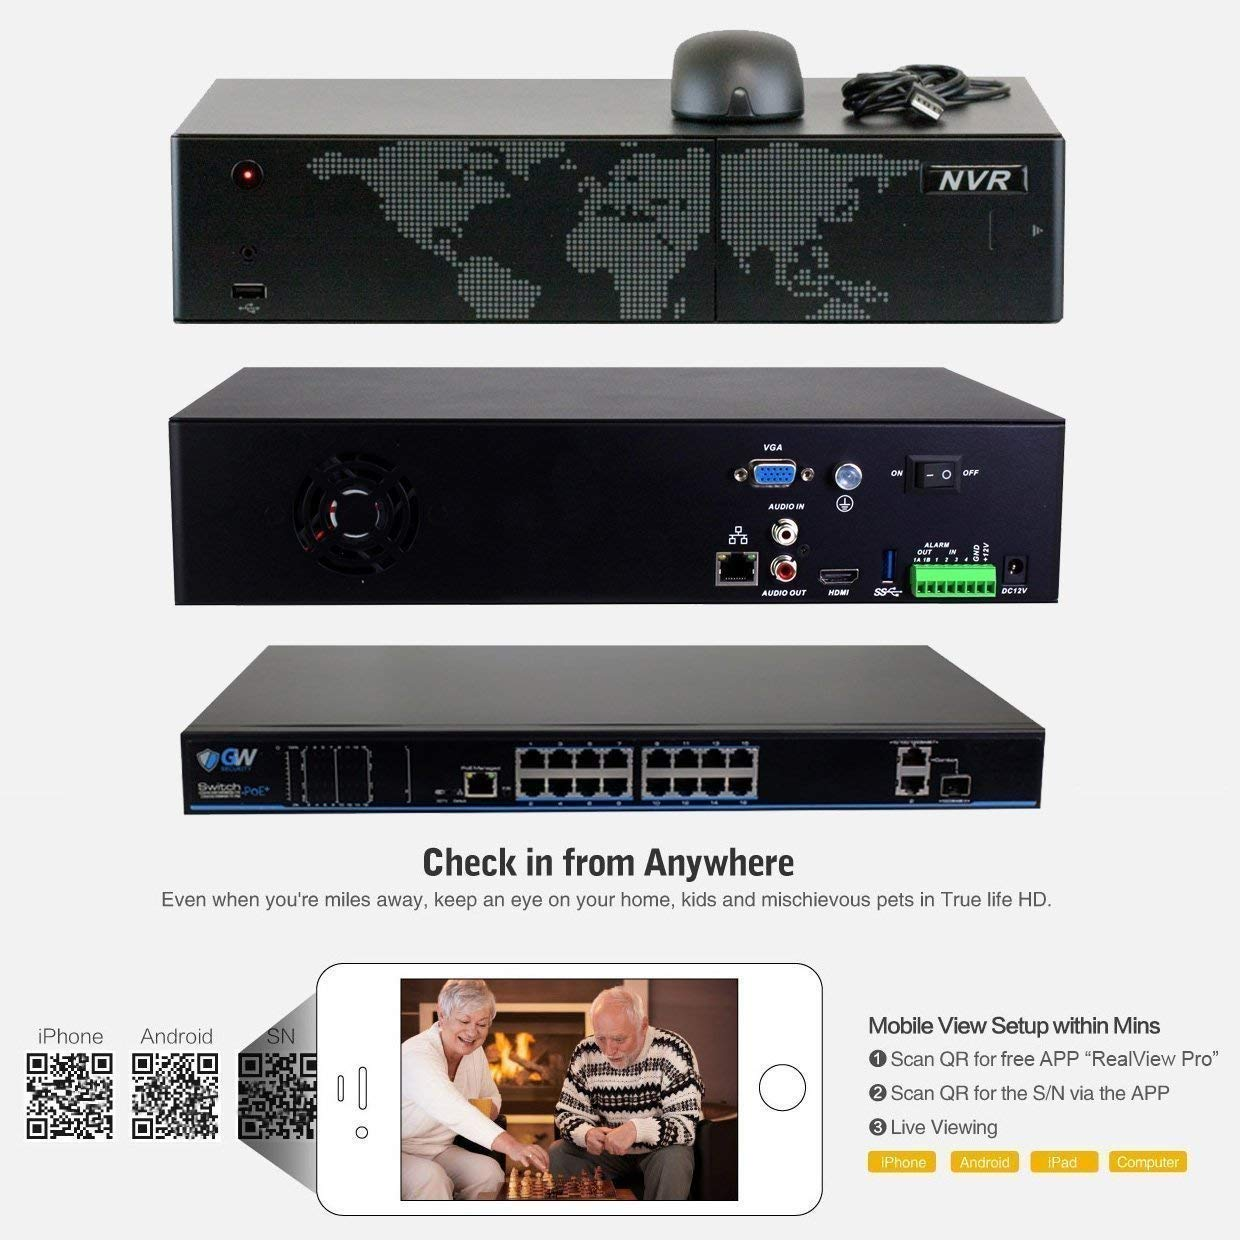 8 Channel H.265 4K NVR GW Security AutoFocus 4K 8MP IP Camera System 4 x 8MP UltraHD 3840x2160 Bullet POE Security Camera 4X Optical Motorized Zoom Outdoor Indoor